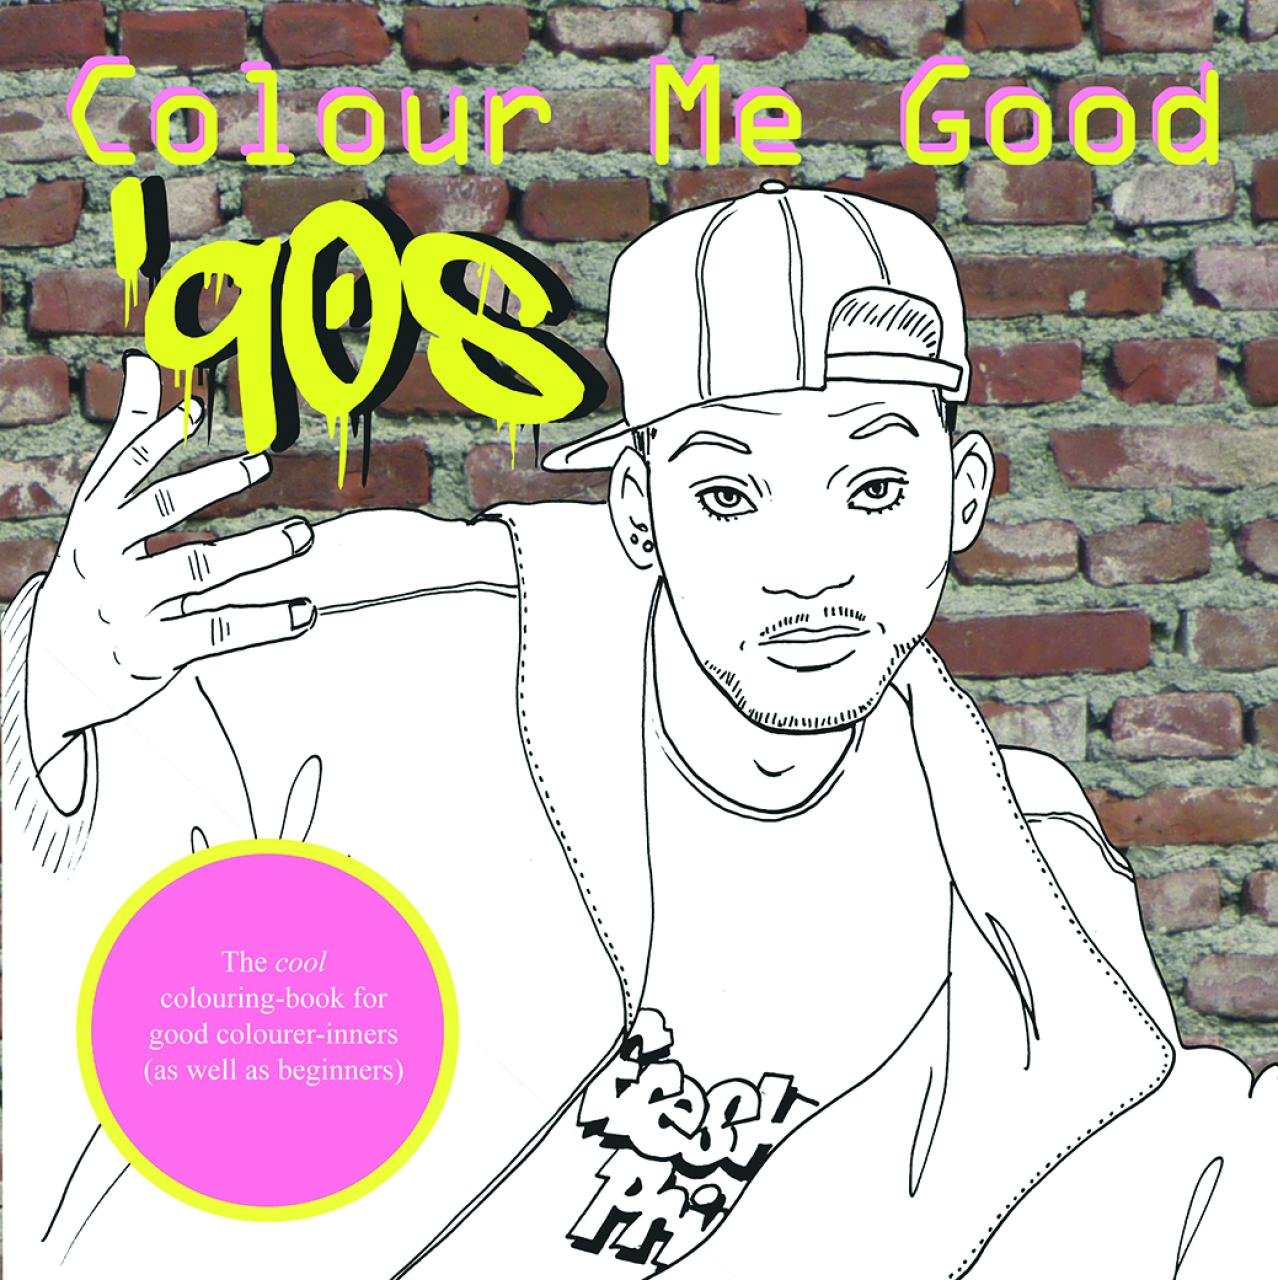 Colour Me Good 90s Amazoncouk I Love Mel 2015956720870 Books